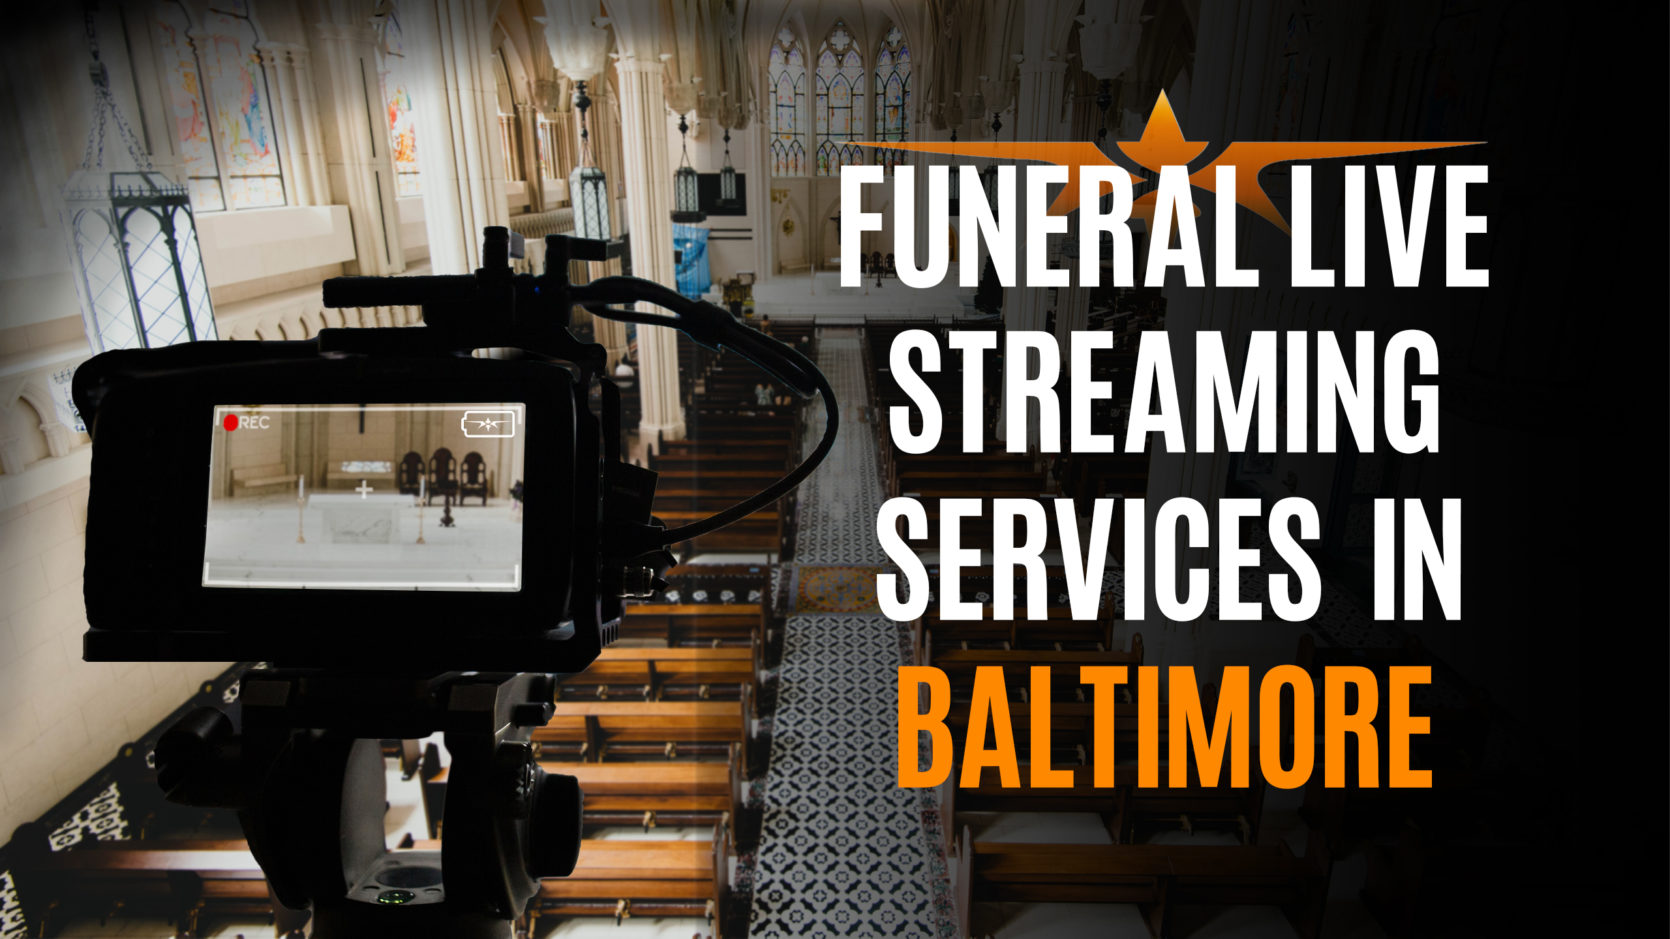 Funeral Live Streaming Services in Baltimore